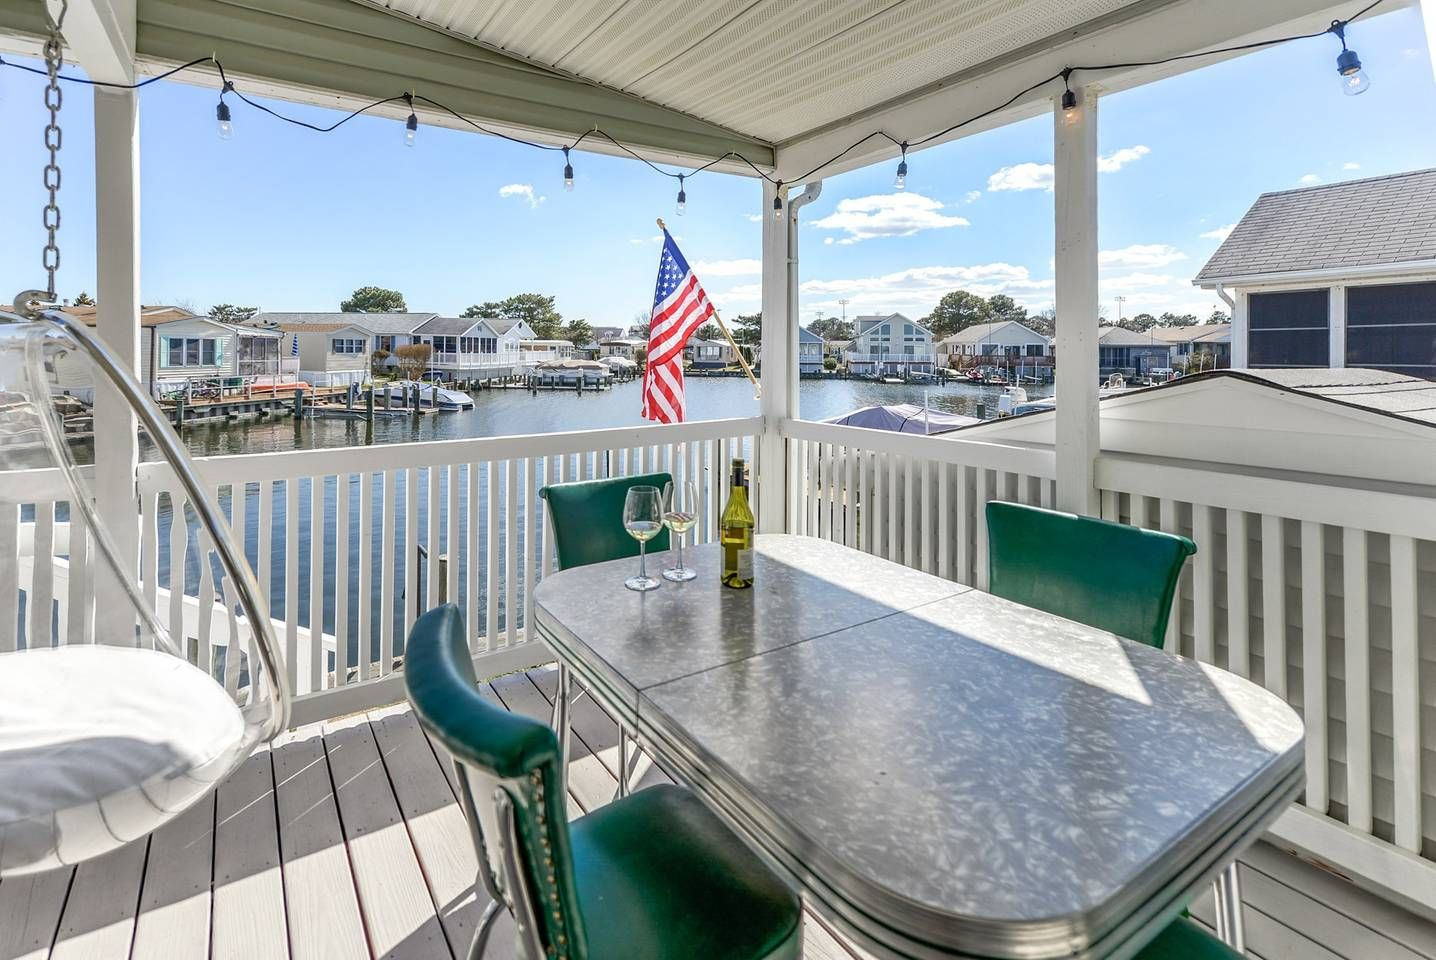 Very Chic Mid Century Modern Themed Beach And Bay House In Ocean City Maryland The Retro Table And Bubble C Beach House Renting A House Ocean City